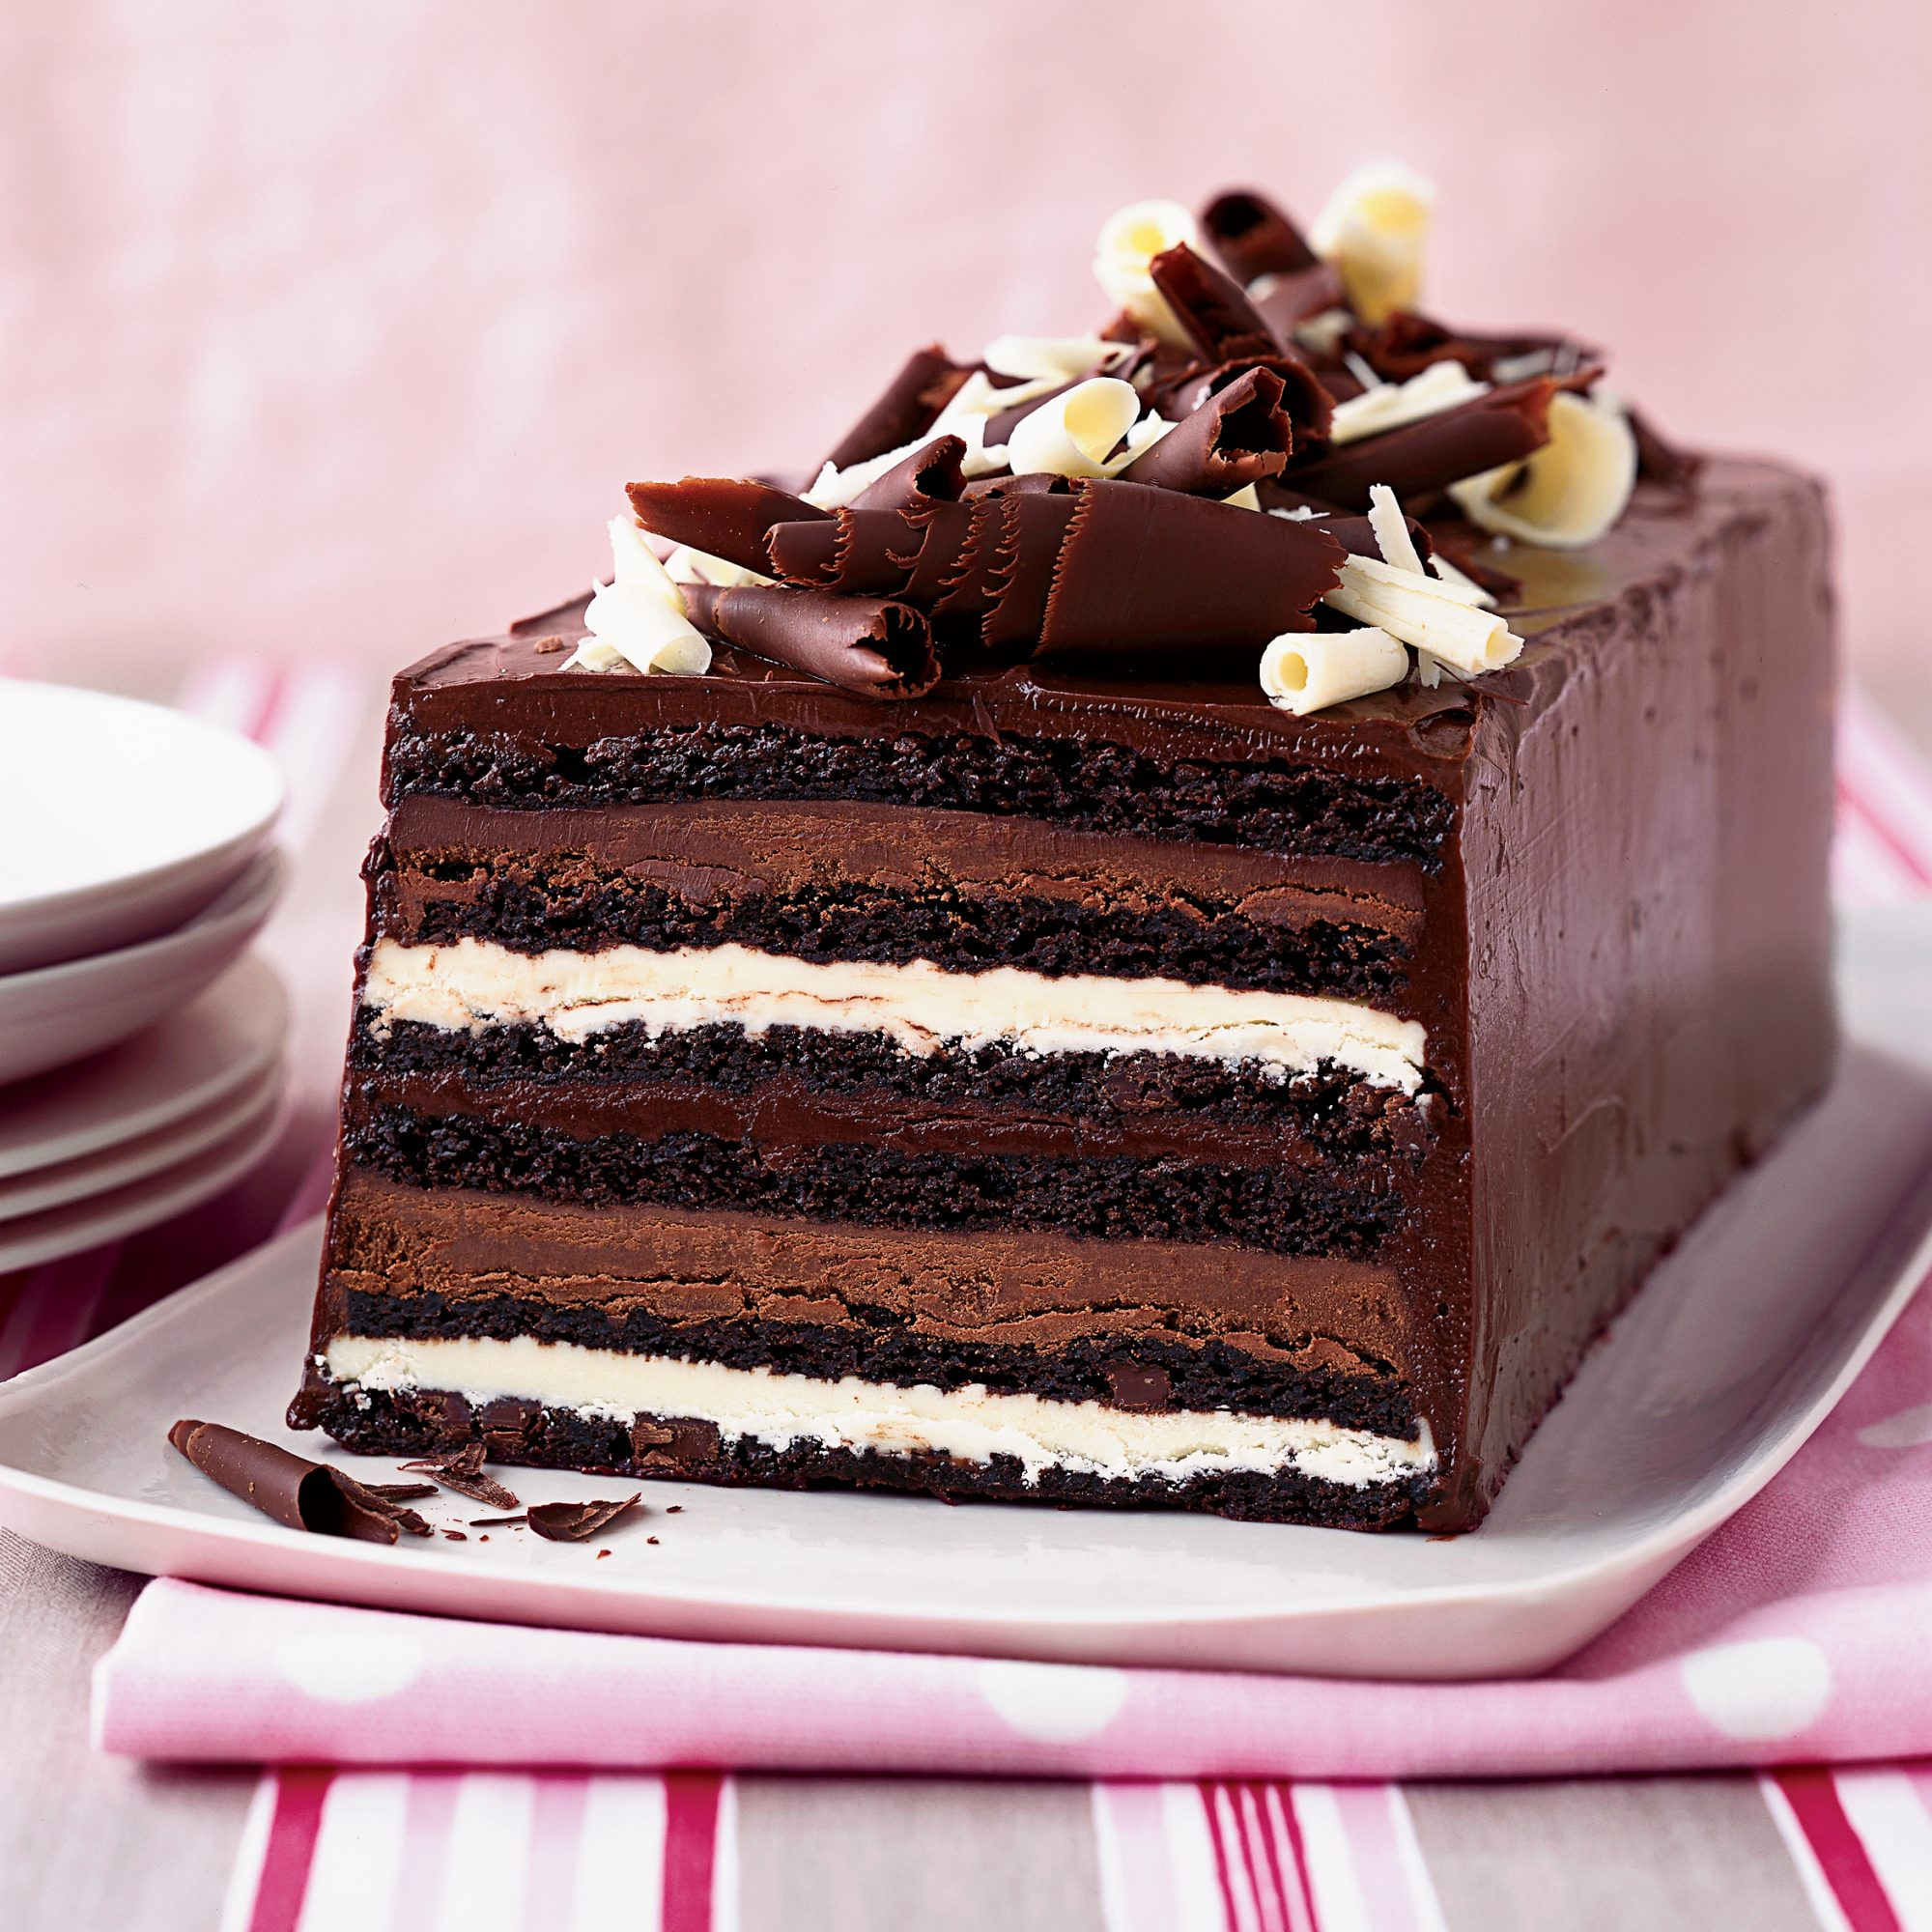 Chocolate Truffle Layer Cake Recipe - Kimberly Sklar | Food & Wine